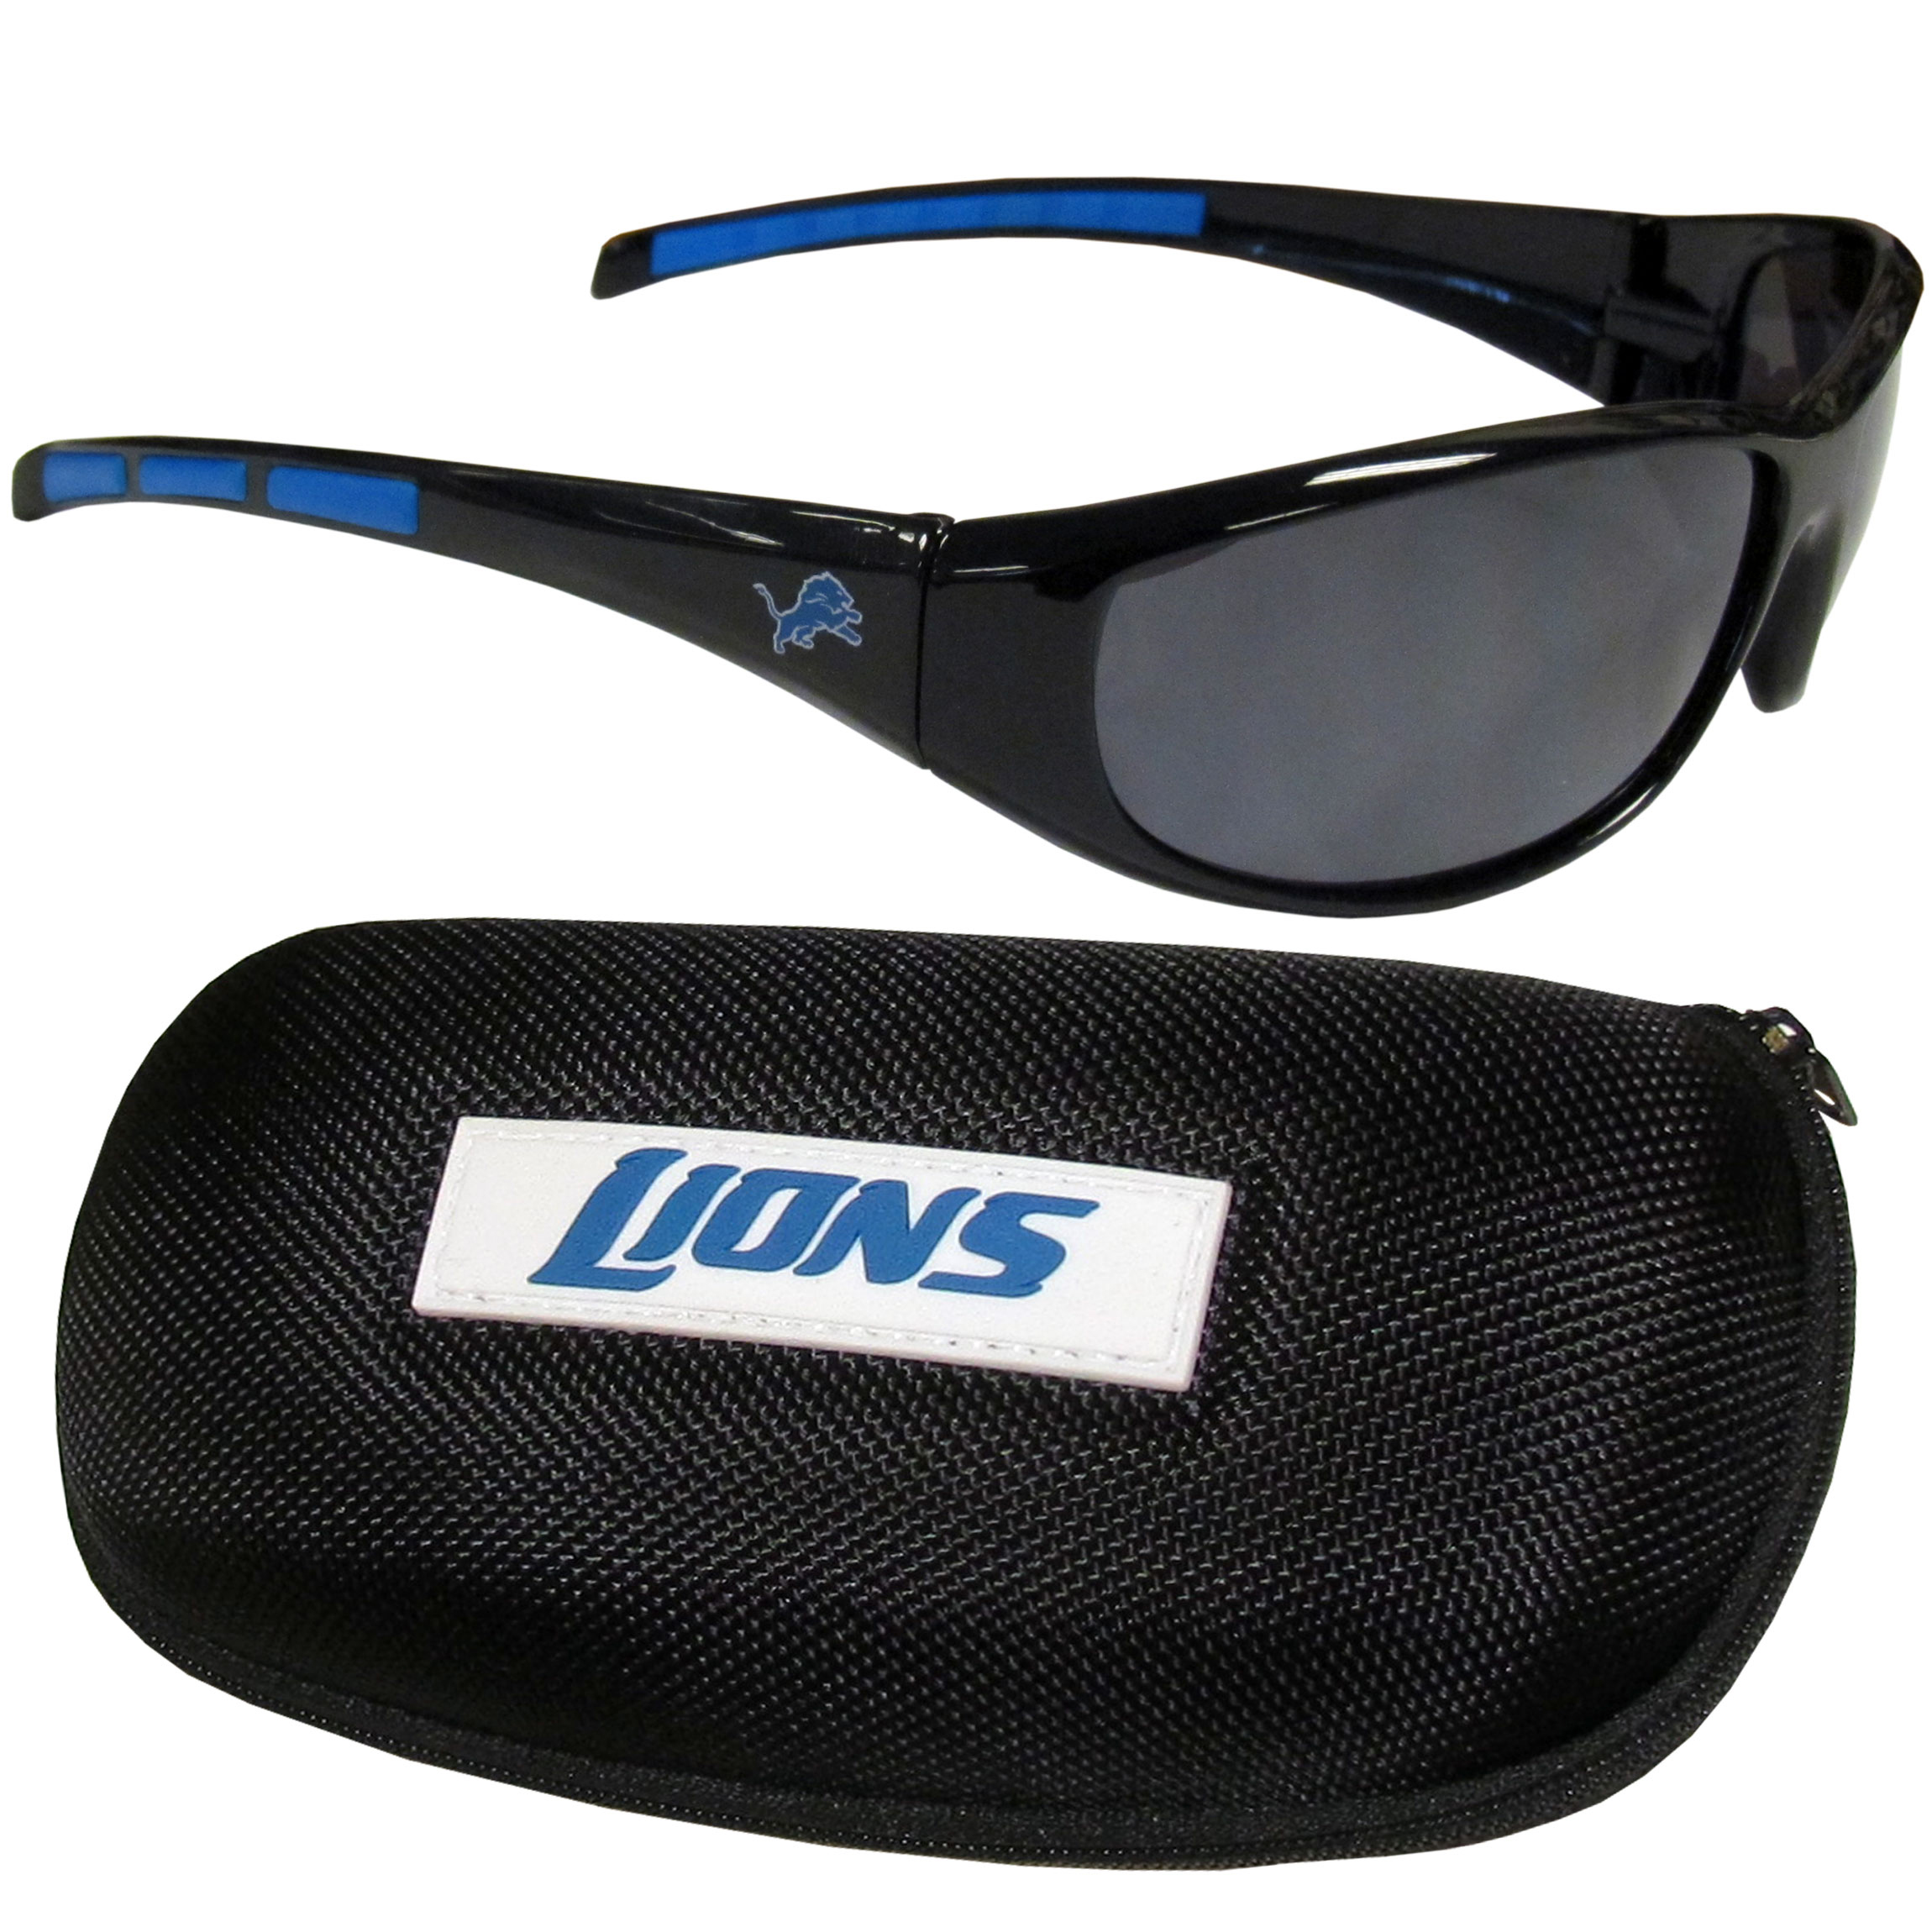 Detroit Lions Wrap Sunglass and Case Set - This great set includes a high quality pair of Detroit Lions wrap sunglasses and hard carrying case.